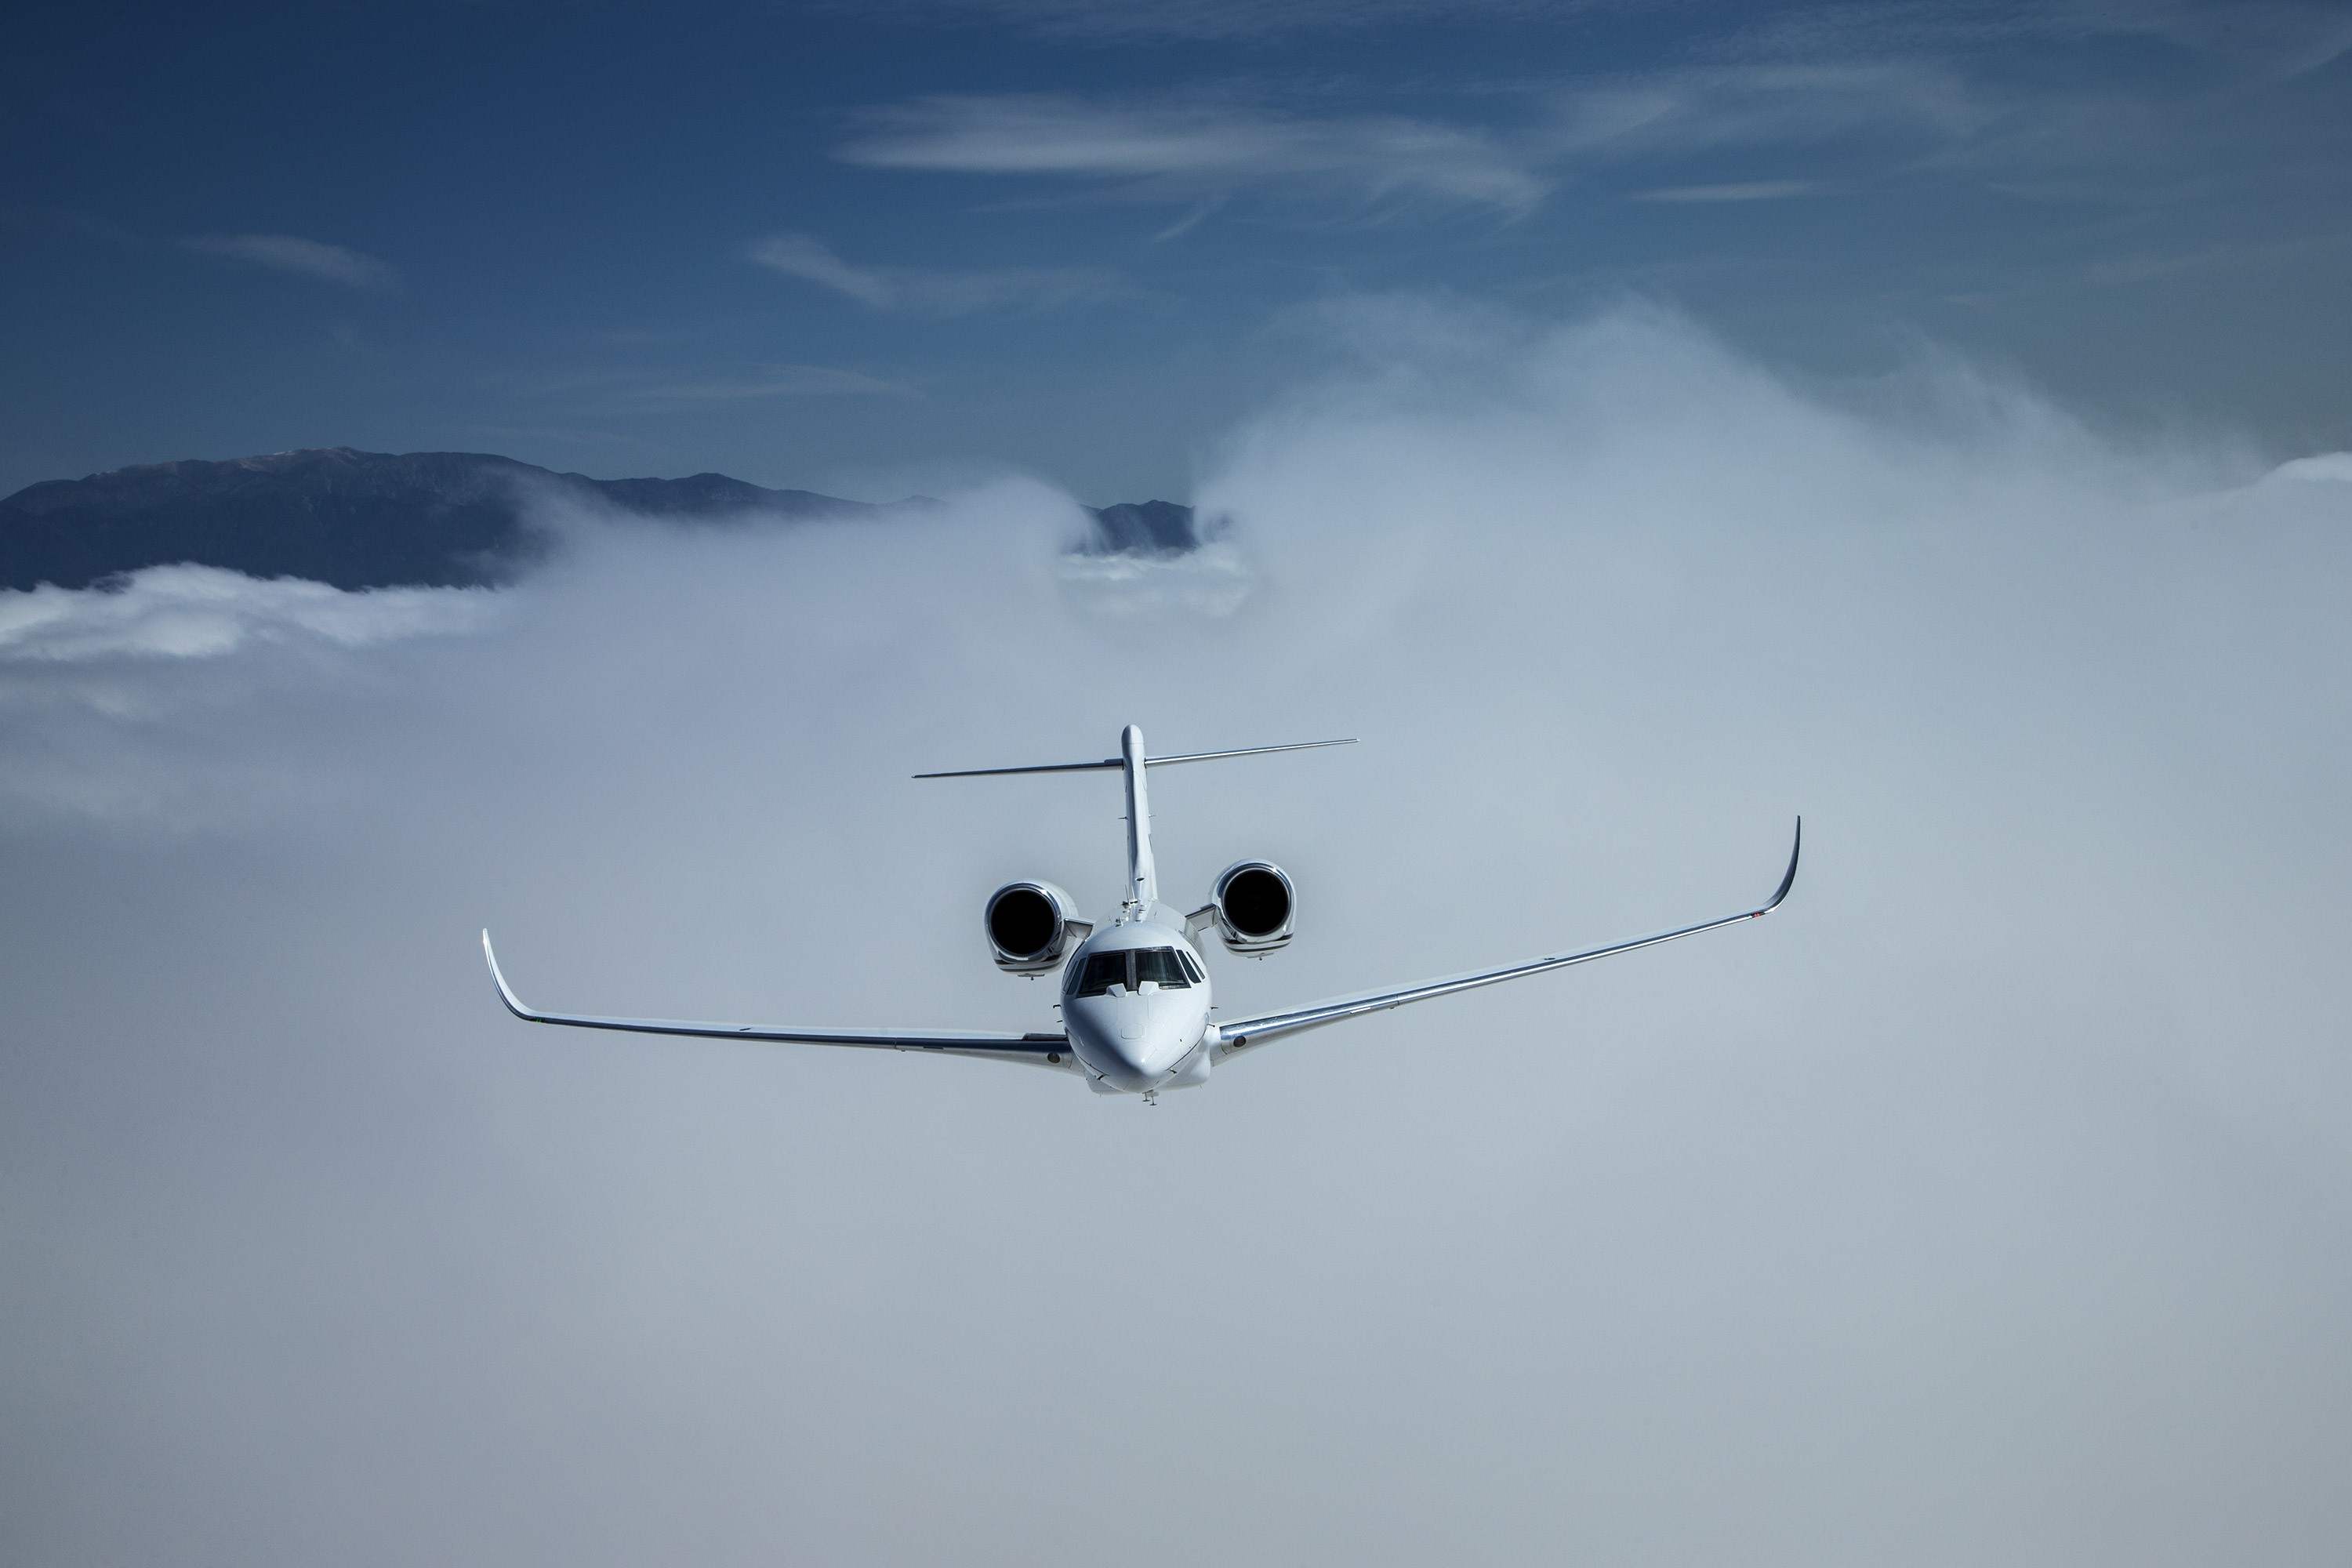 In 1972 Citations Are The Largest Fleet Of Business Jets In The World